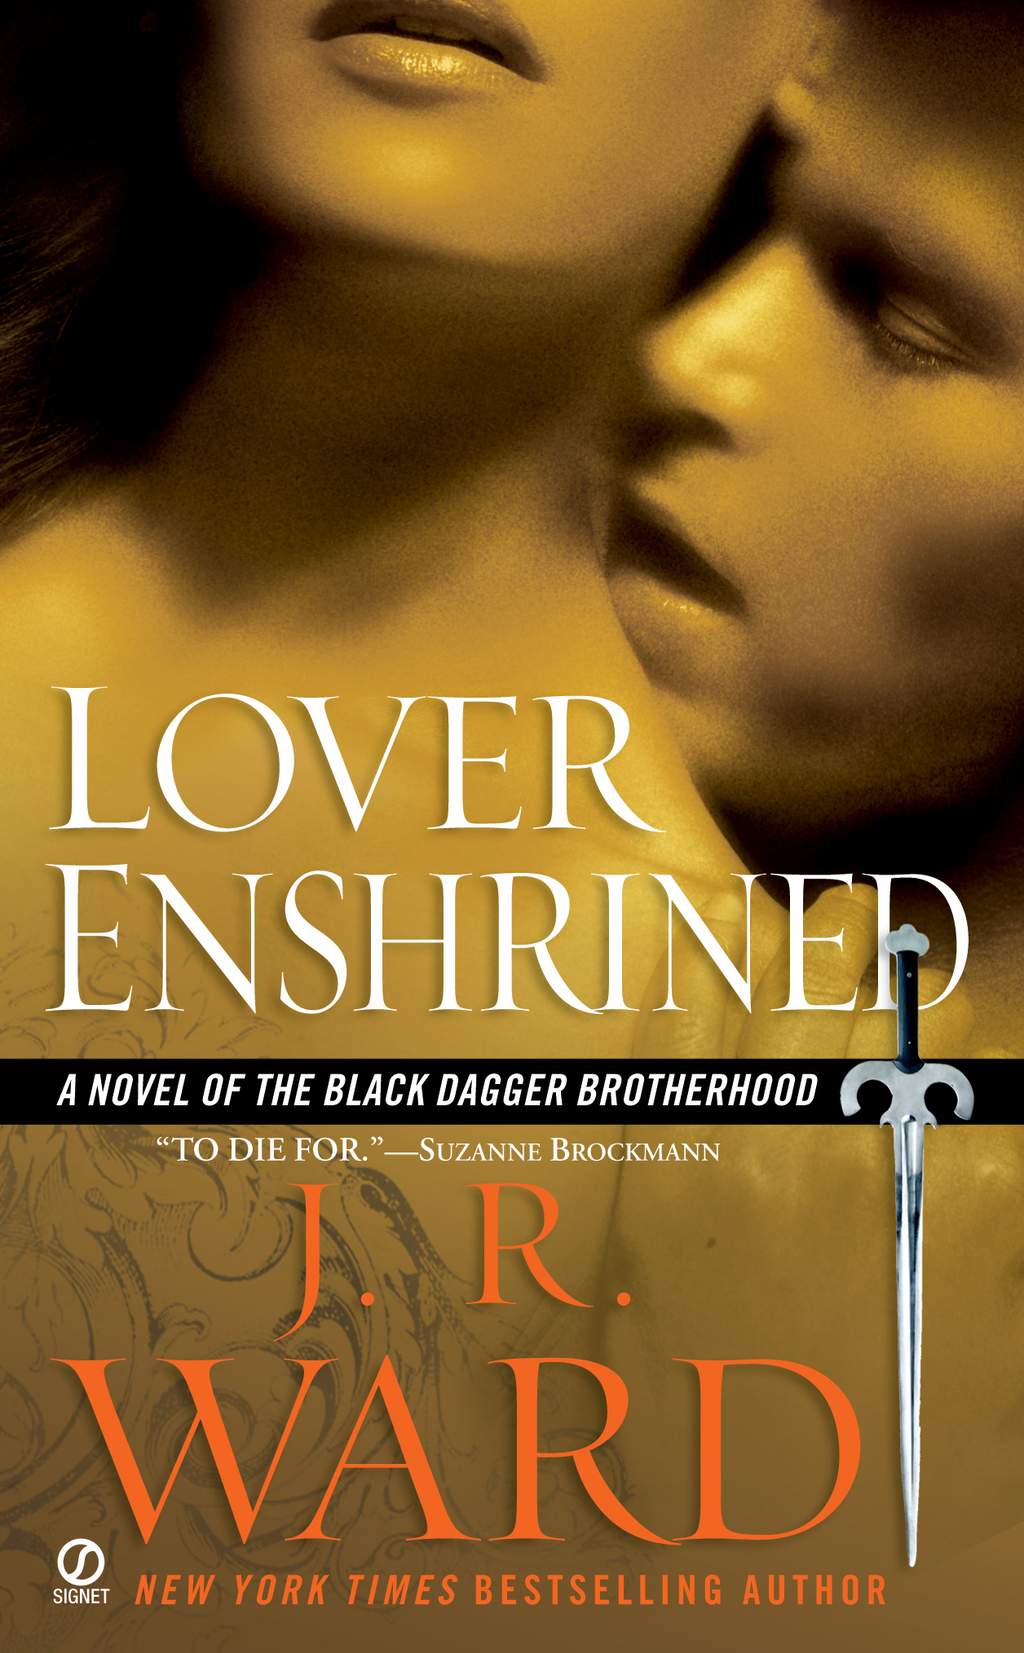 Lover Enshrined By: J.R. Ward